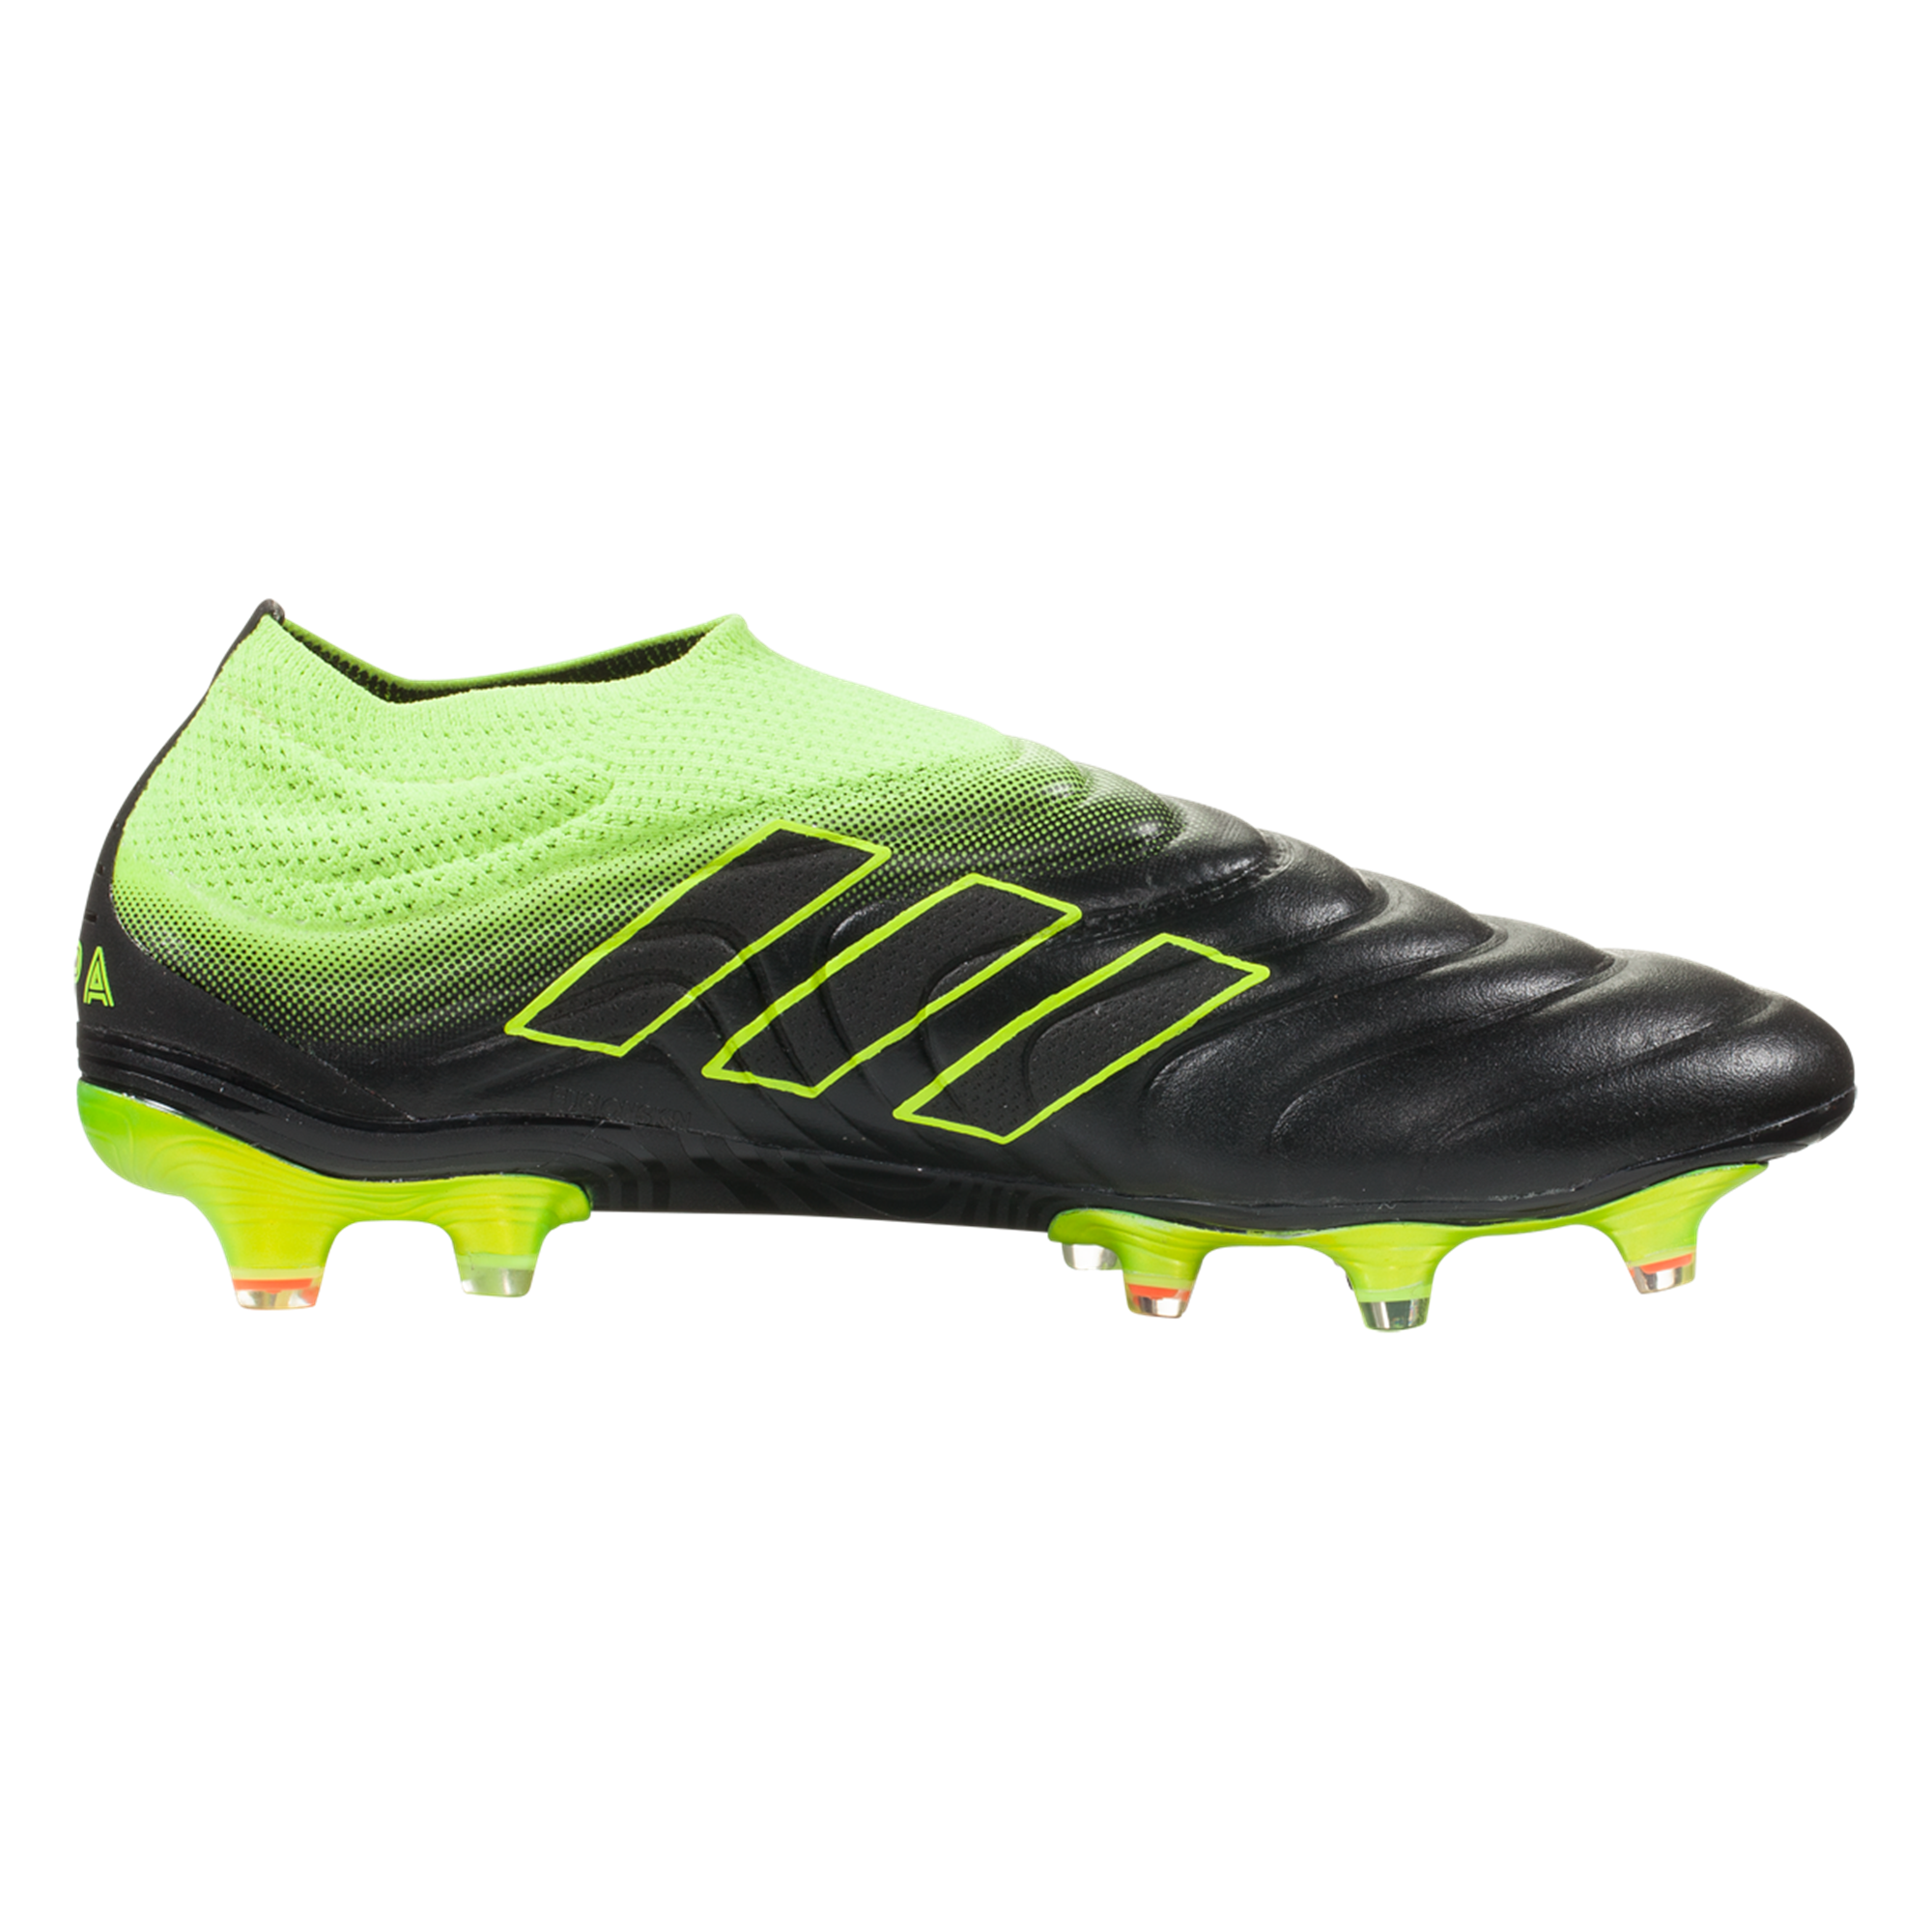 Adidas Copa 19 Fg Firm Ground Soccer Cleat Black Yellow Black Football Boots Soccer Cleats Cleats